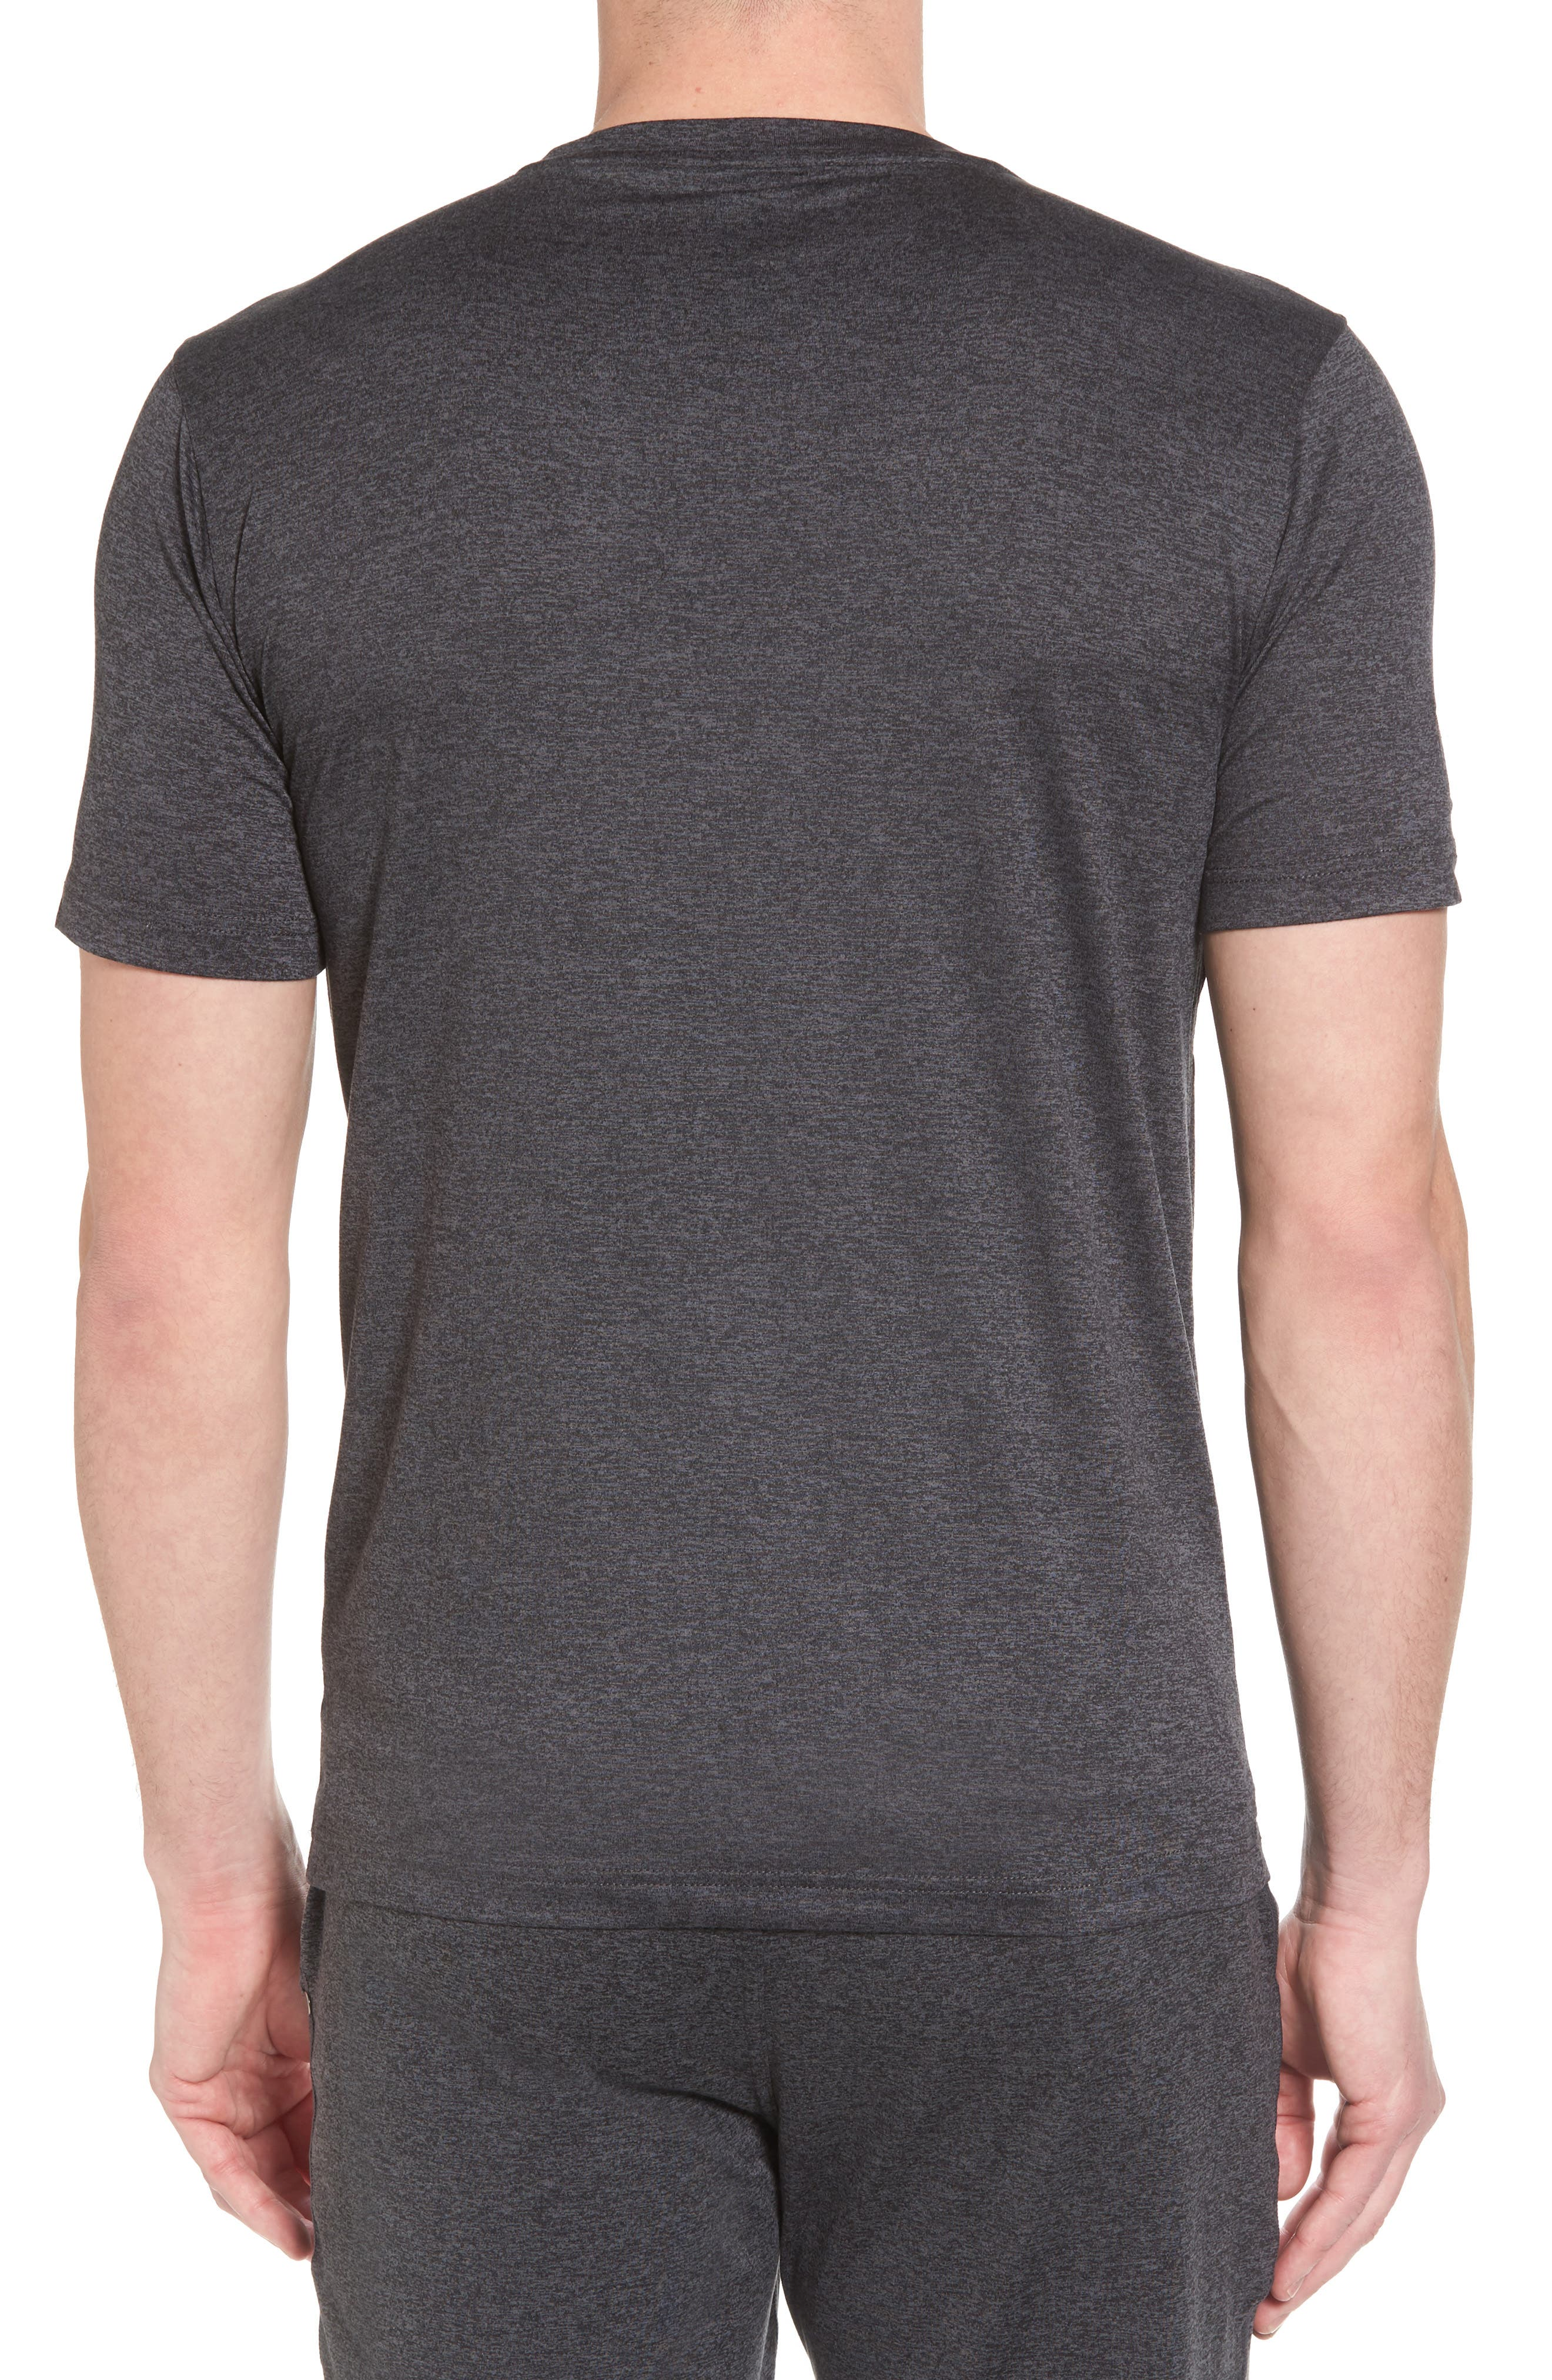 Strato Slim Fit Crewneck T-Shirt,                             Alternate thumbnail 2, color,                             HEATHER CHARCOAL